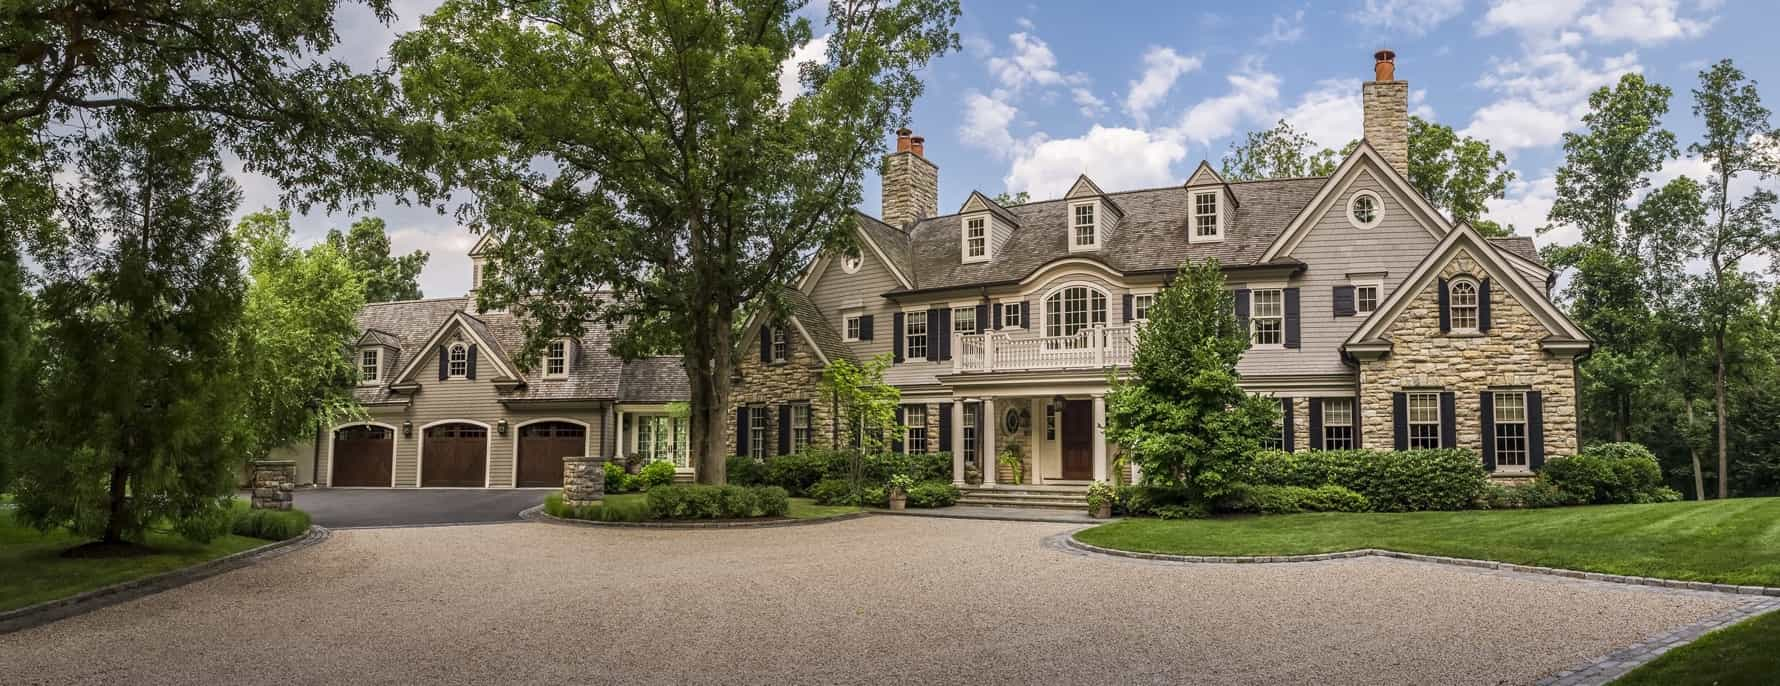 Featured Image of Beautiful Traditional Colonial Estate Exterior